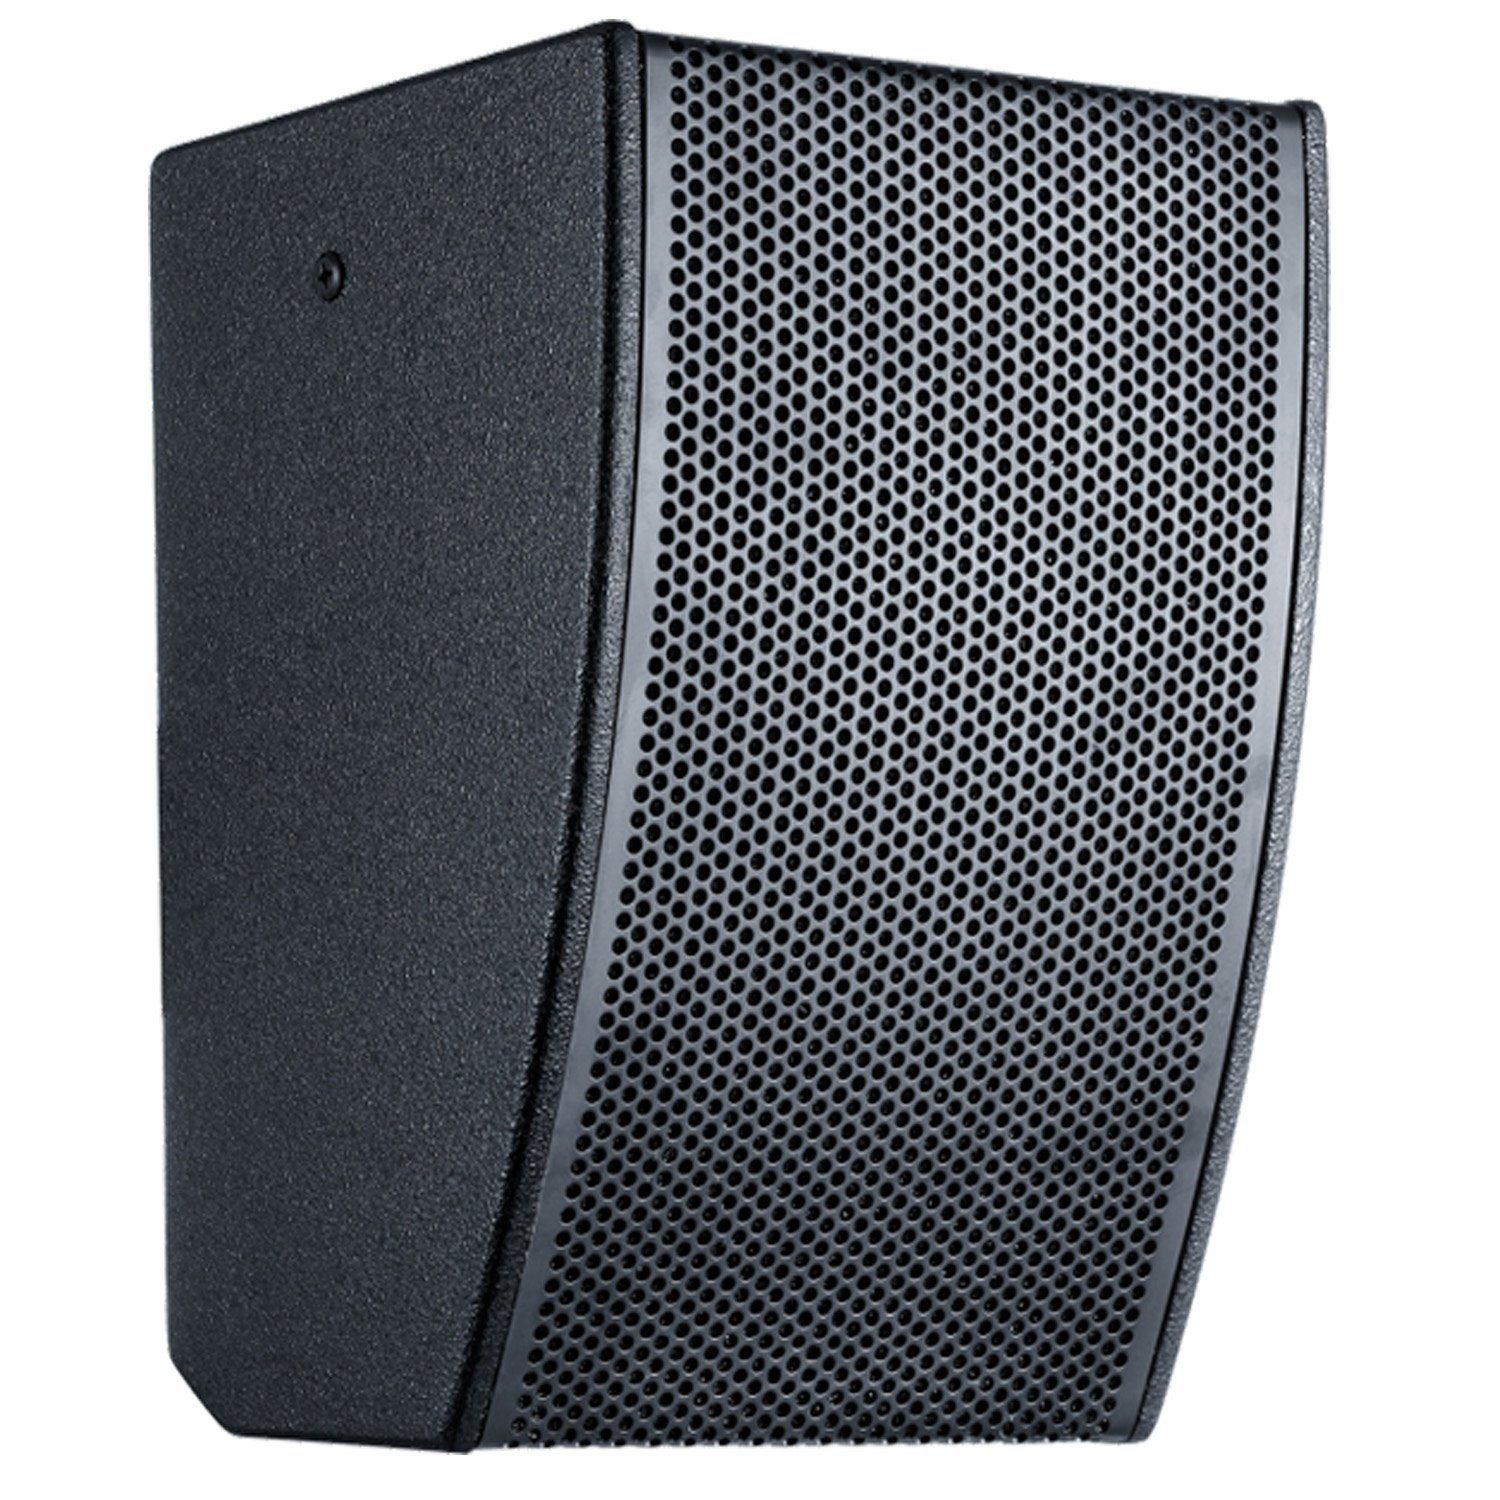 Public Address Professional Loundspeaker Sp-6